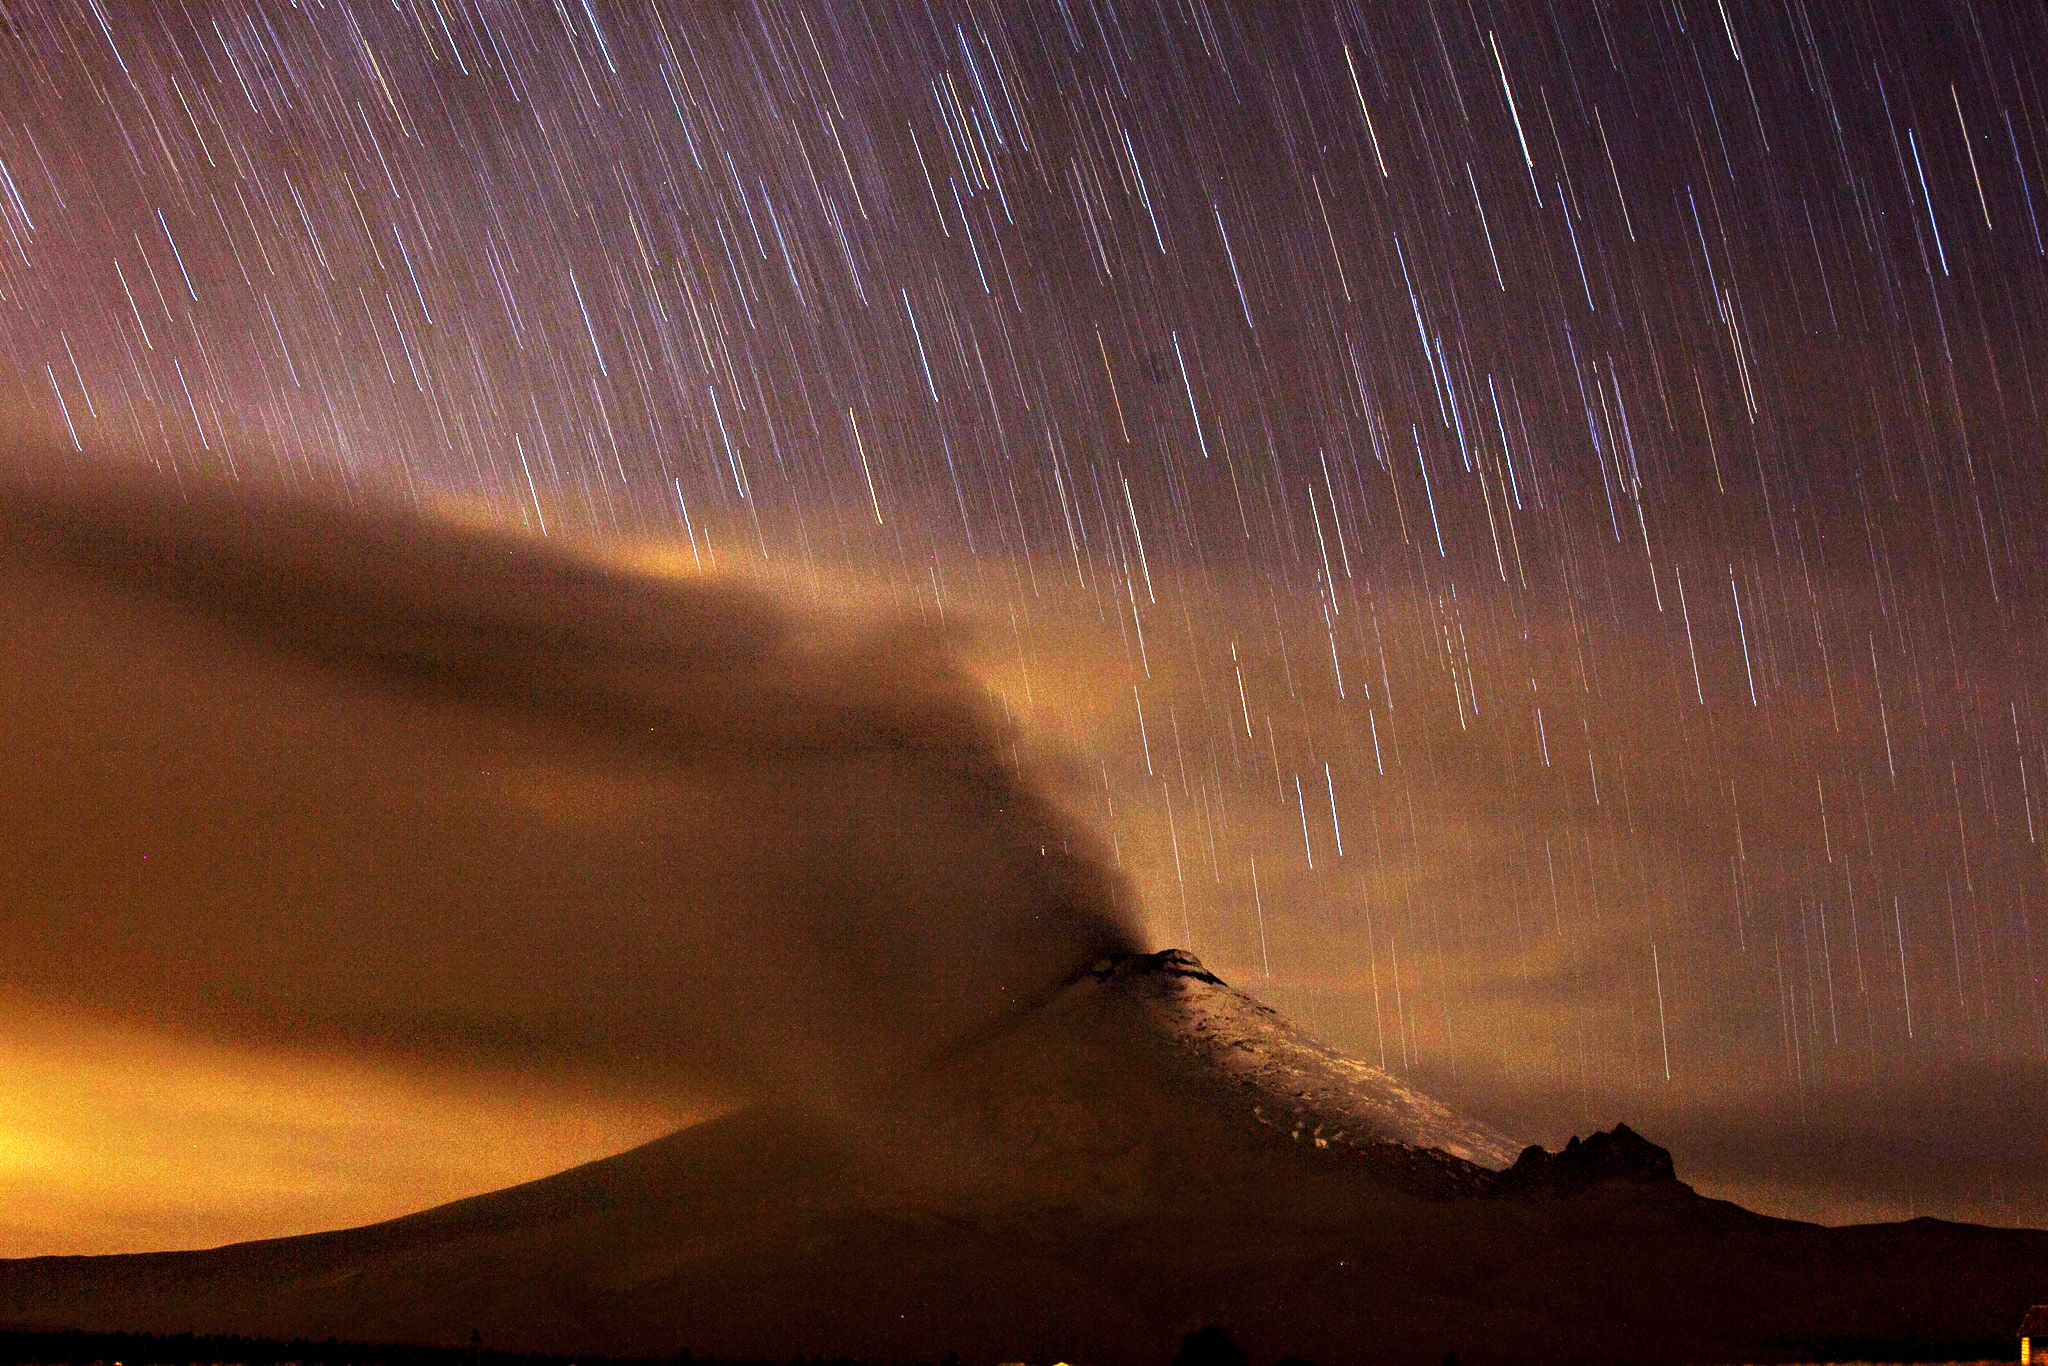 Volcano Cotopaxi seen from Alaquez, Ecuador. The volcano presented a new eruption of ashes that fell in the nearby towns